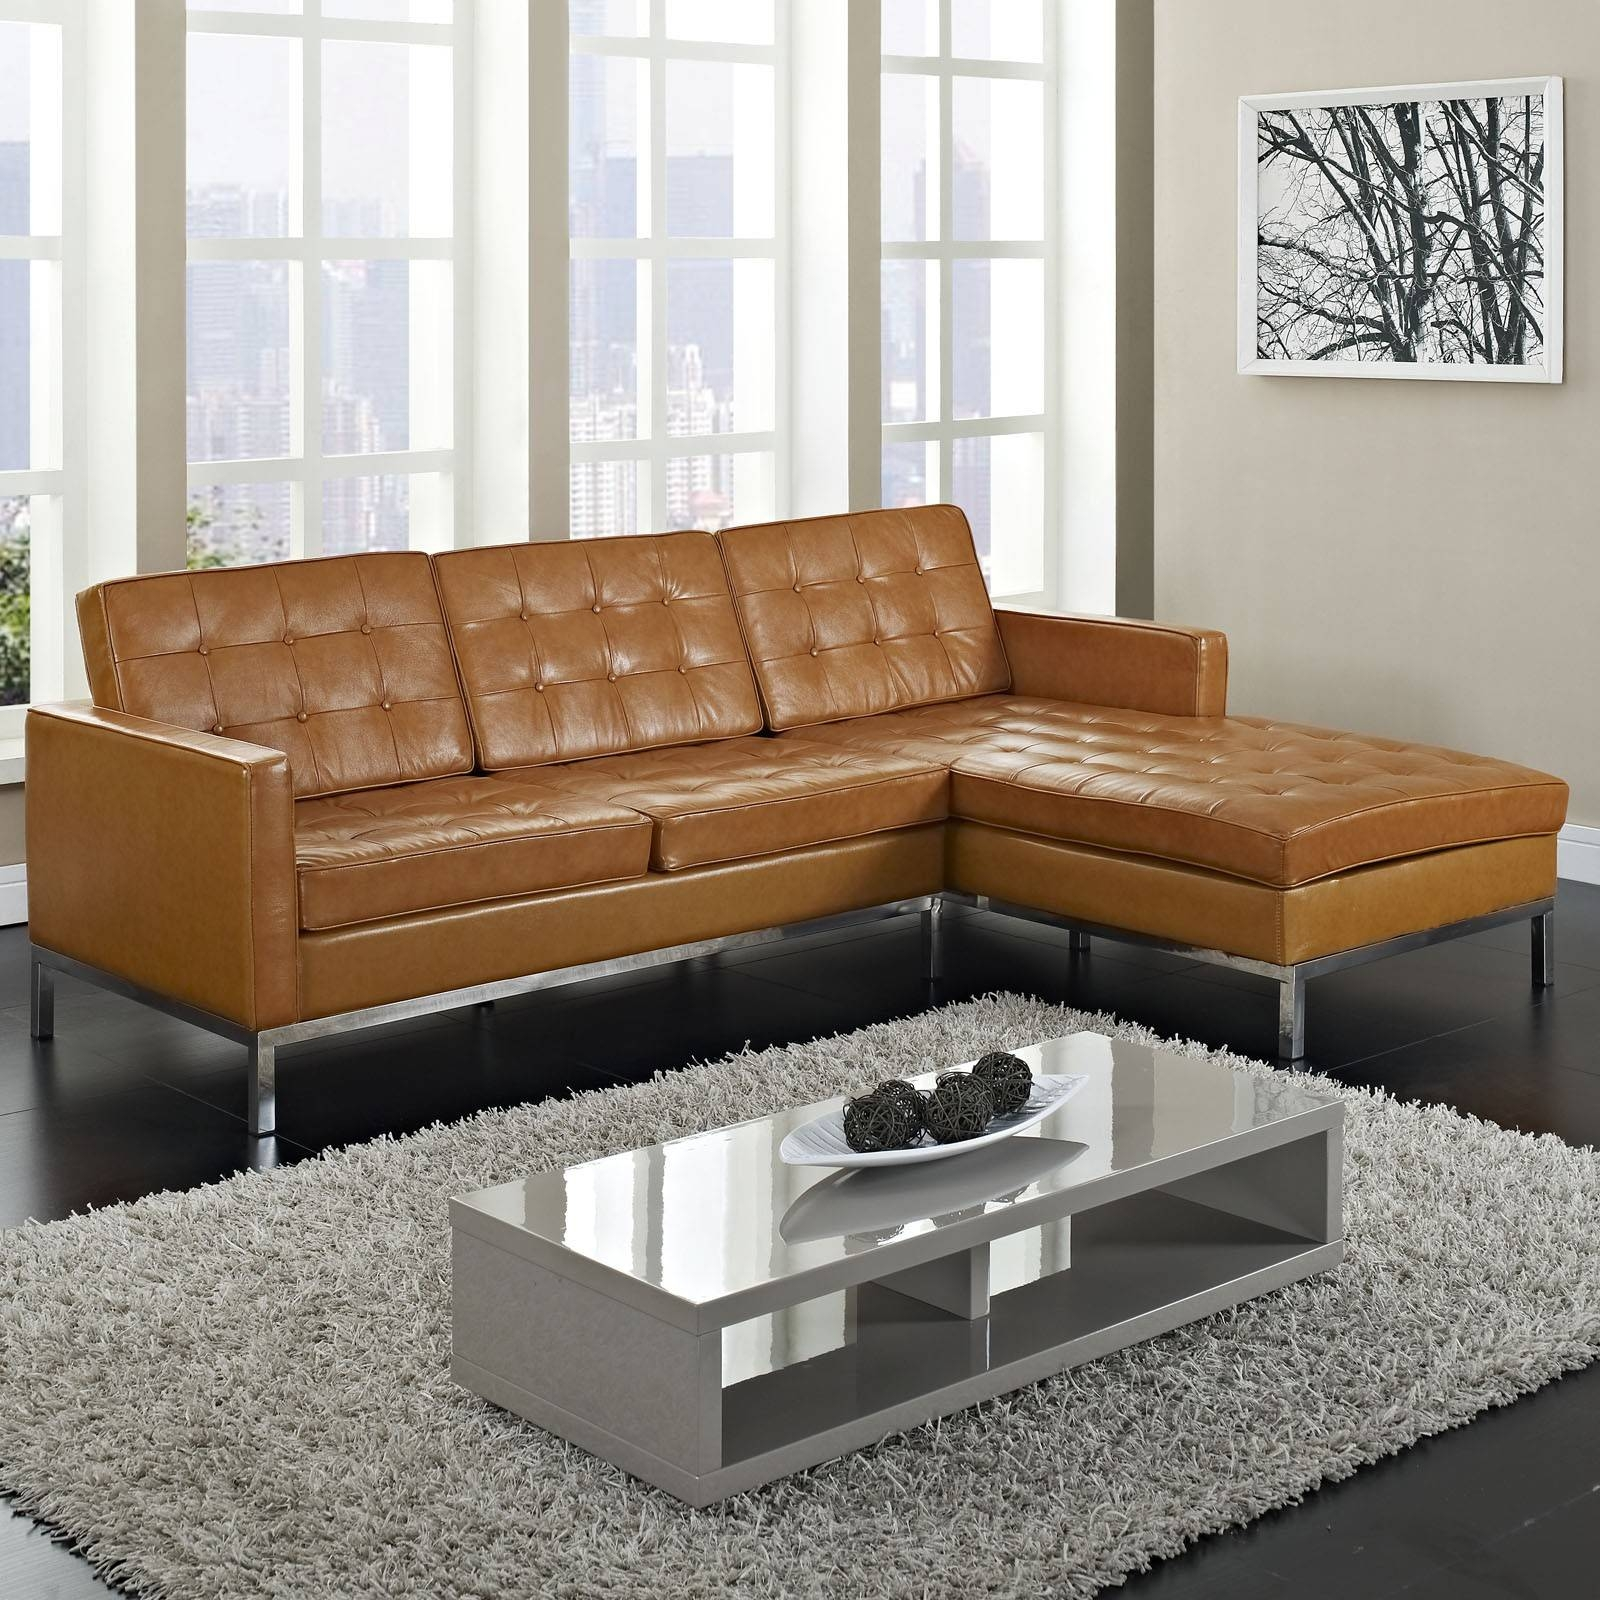 Small Modular Sofa Sectionals Stunning Sectional Sofa Dimensions